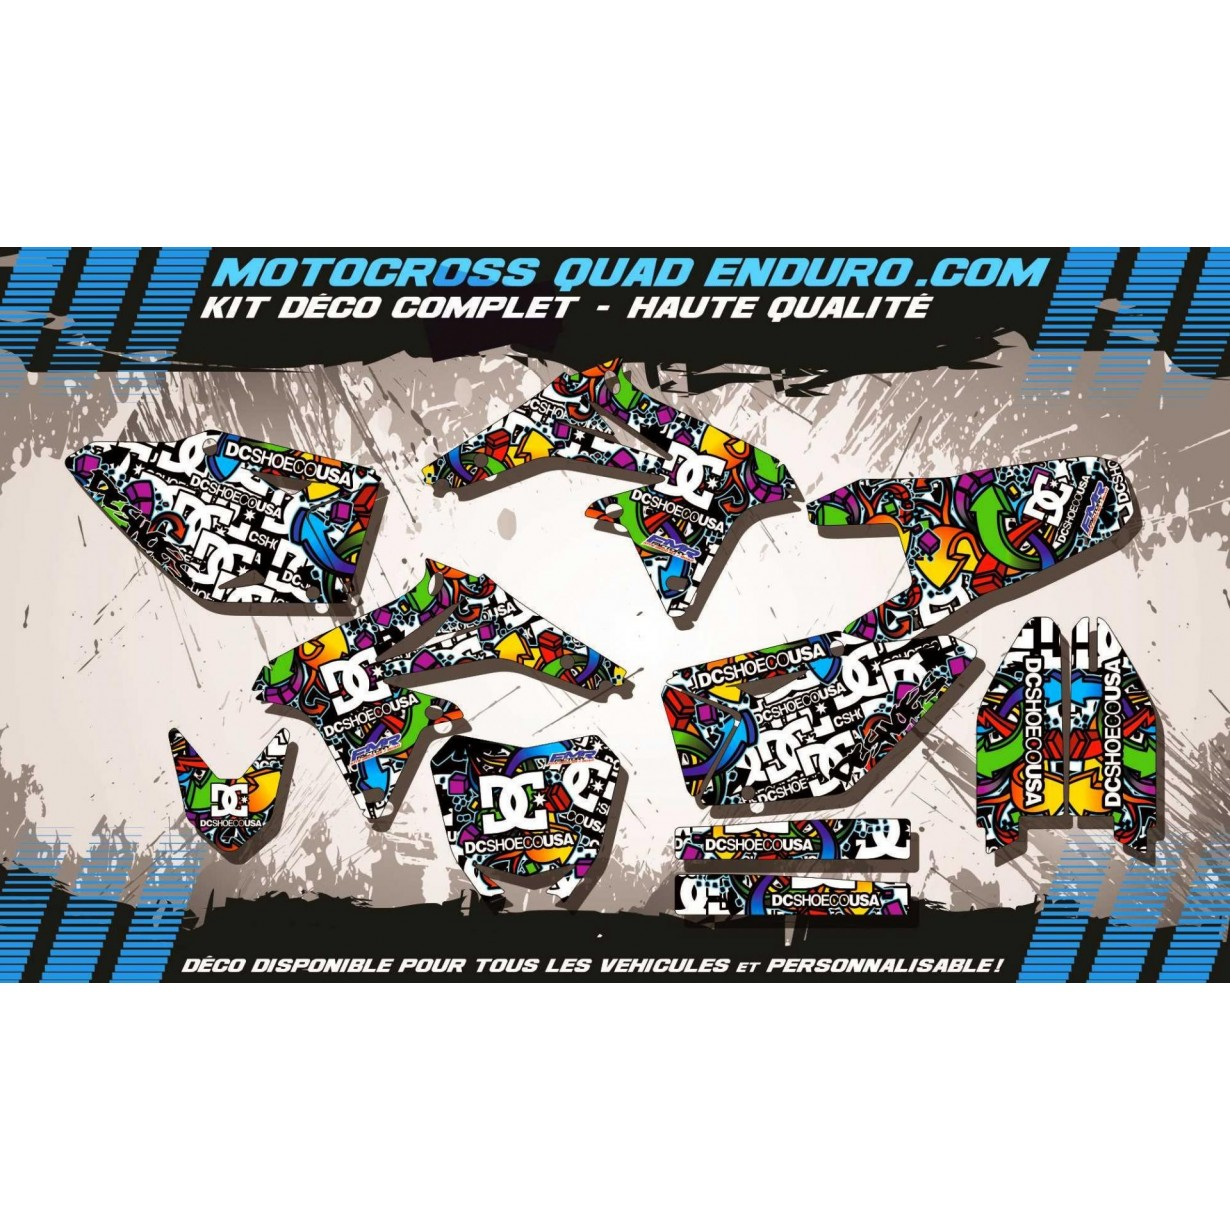 KIT DÉCO Perso 450 RMZ 08-17 DC Shoes MA14A